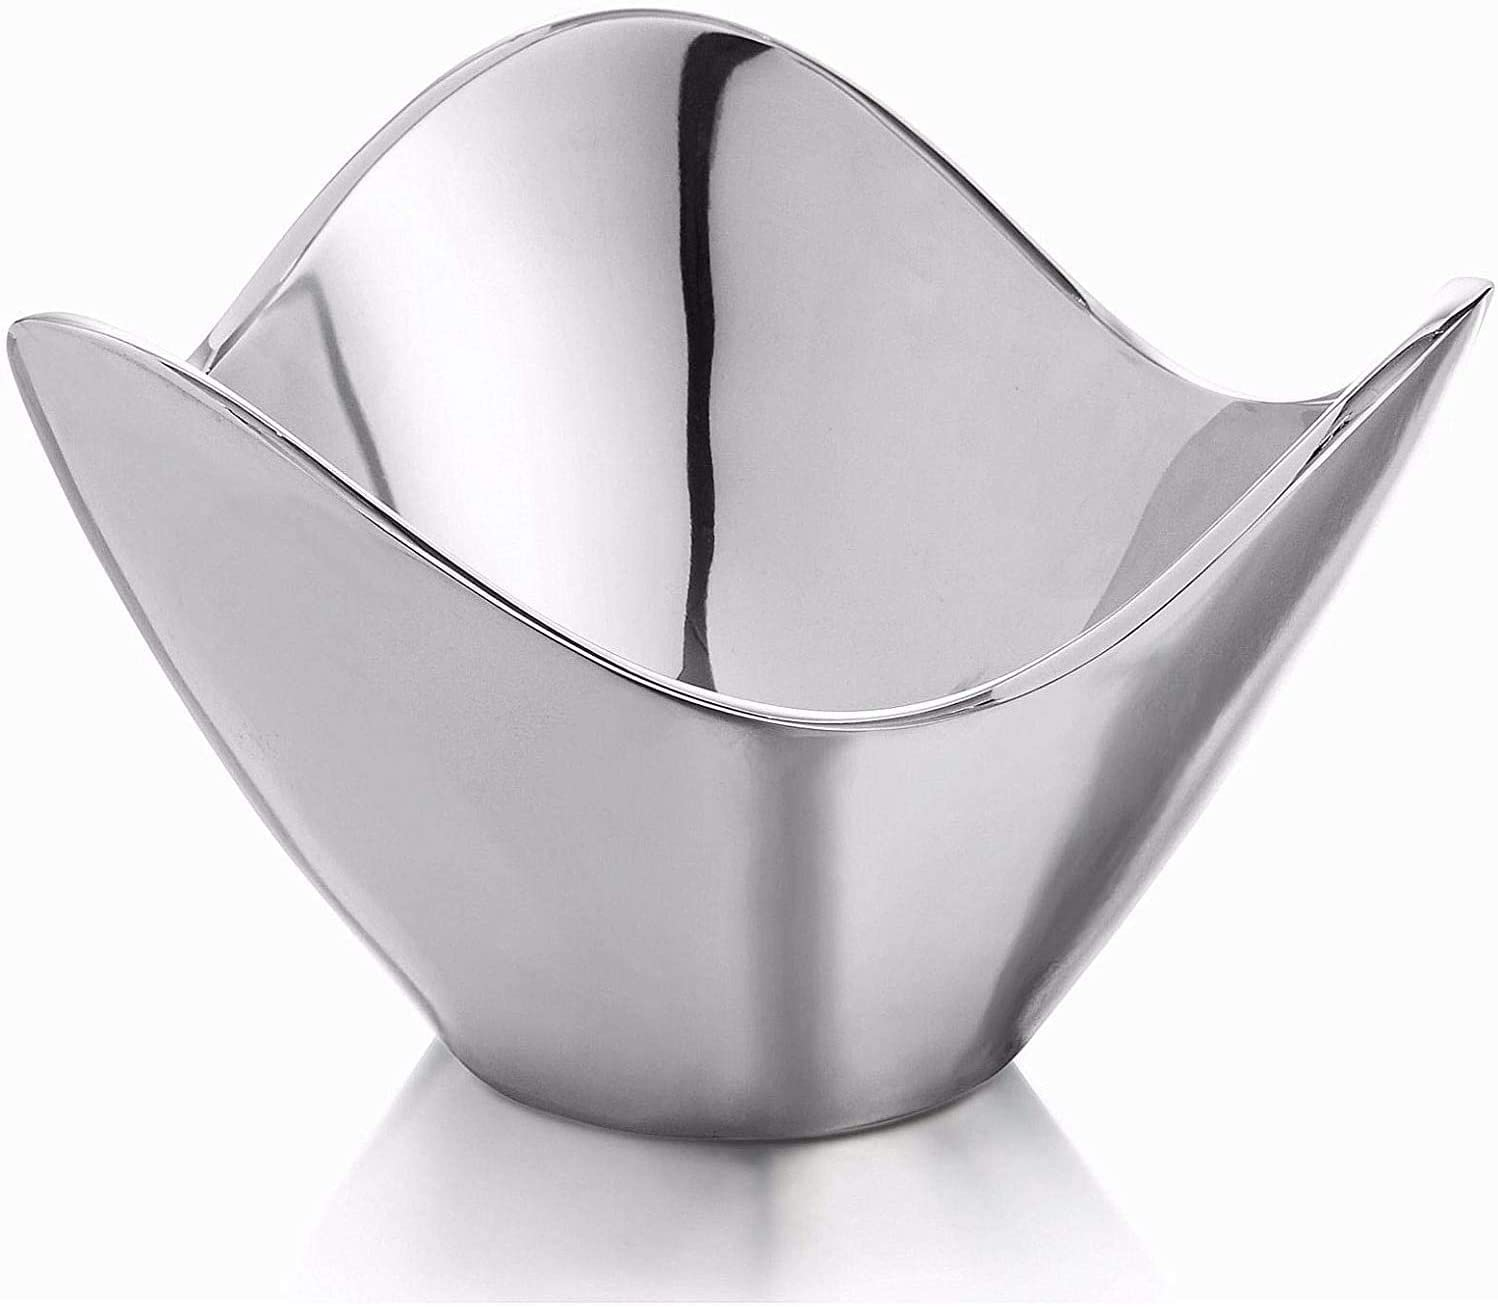 Popularity Nambe Wave Max 84% OFF Bowl